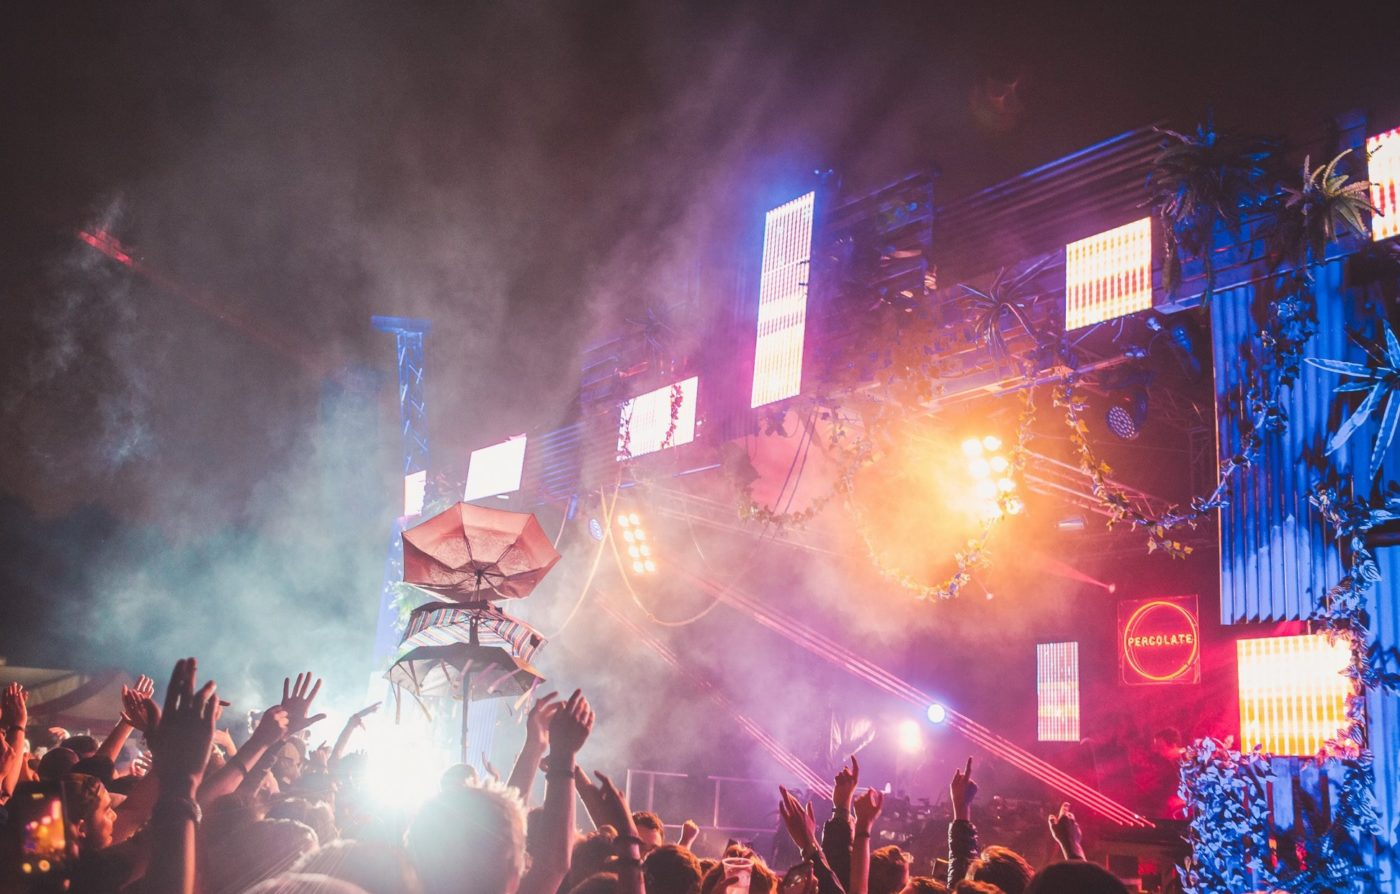 Image of festival crowd at night in front of bright lights and stage